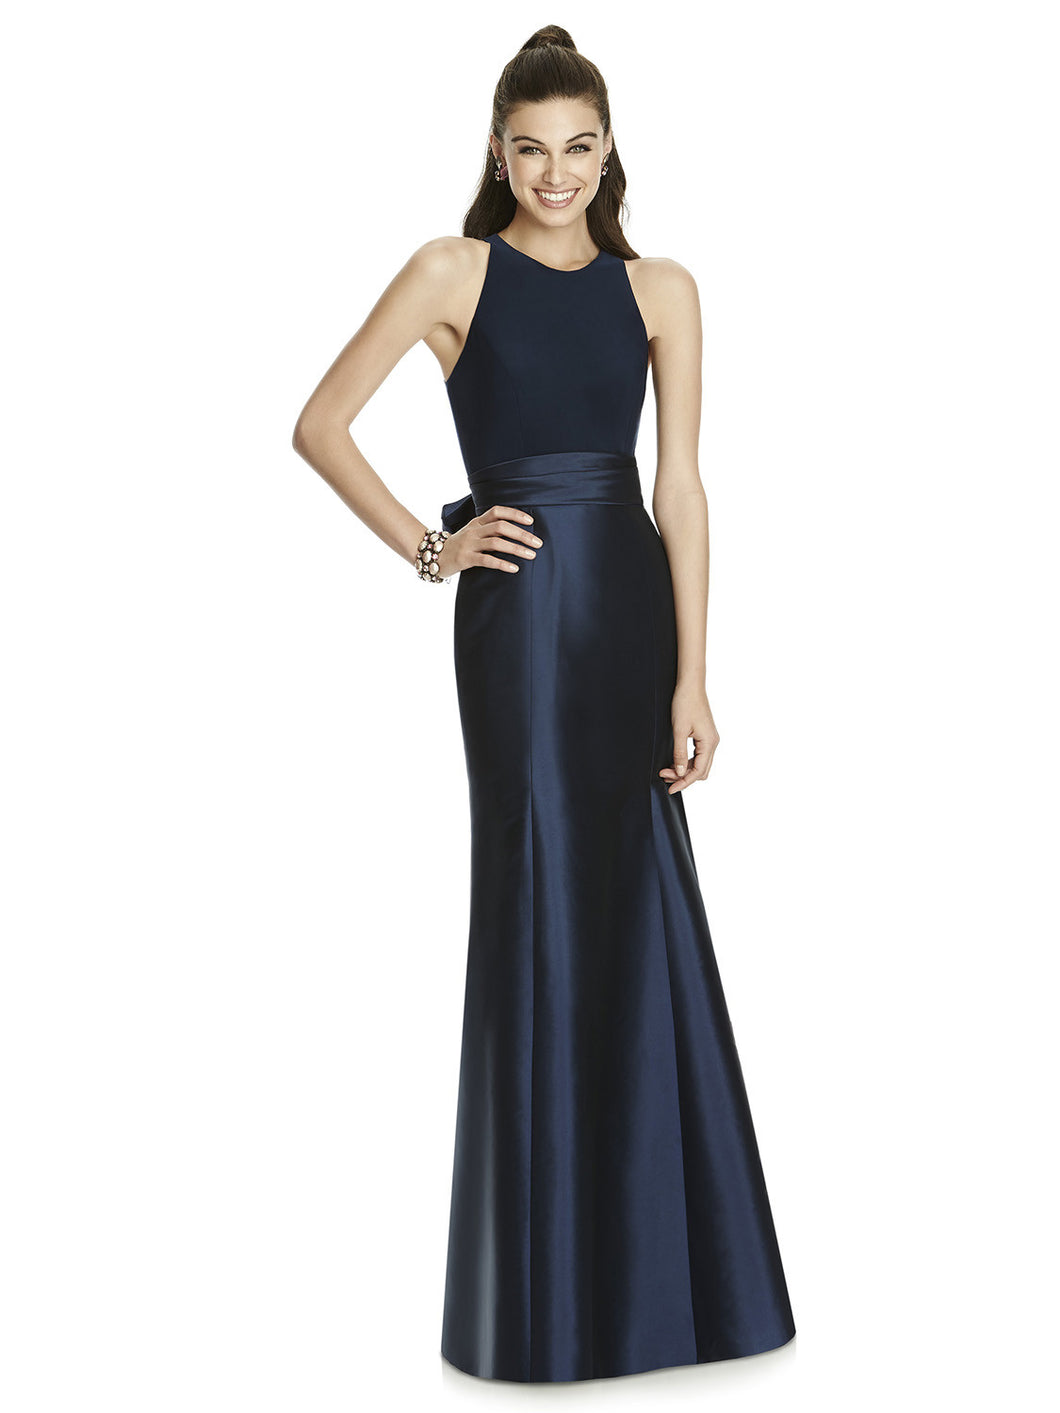 Alfred sung bridesmaid dresses alfred sung d737 chicago bridal alfred sung bridesmaid dresses alfred sung d737 ombrellifo Choice Image